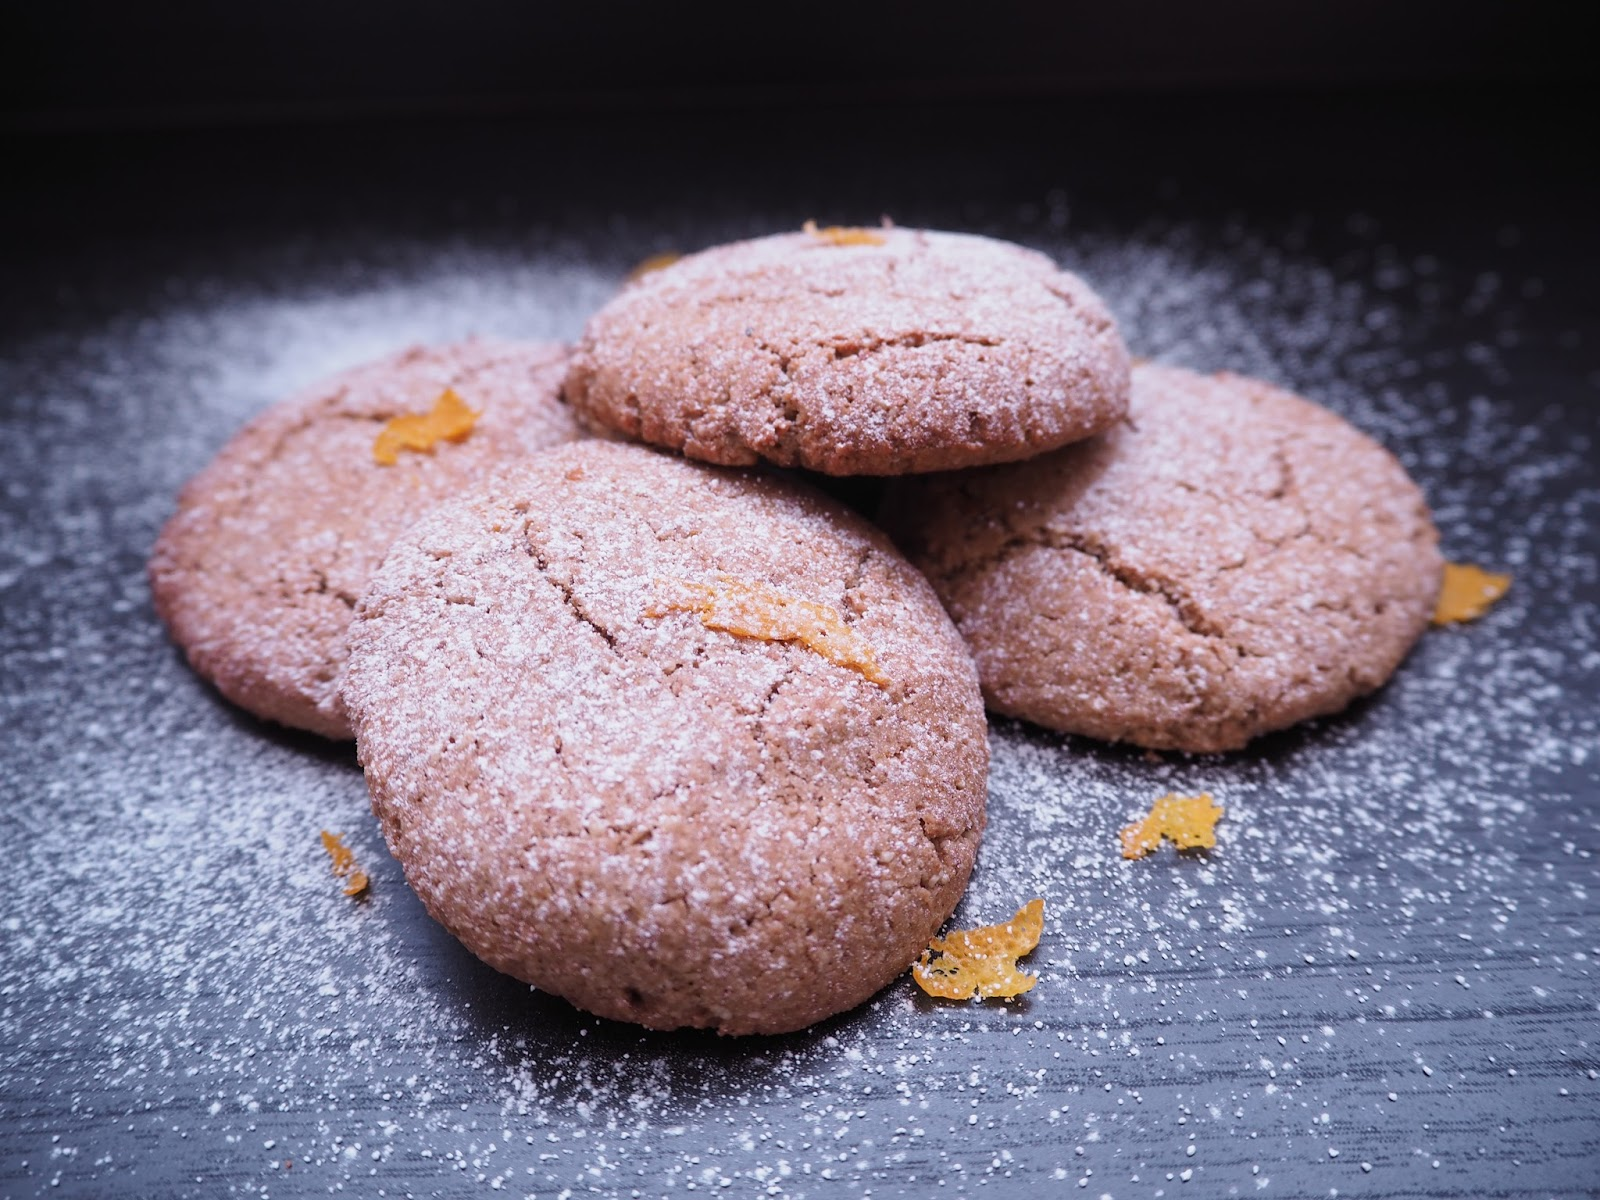 These orange spice biscuits / cookies from Niomi Smart's Eat Smart plant based cookbook are perfect for making in the festive season